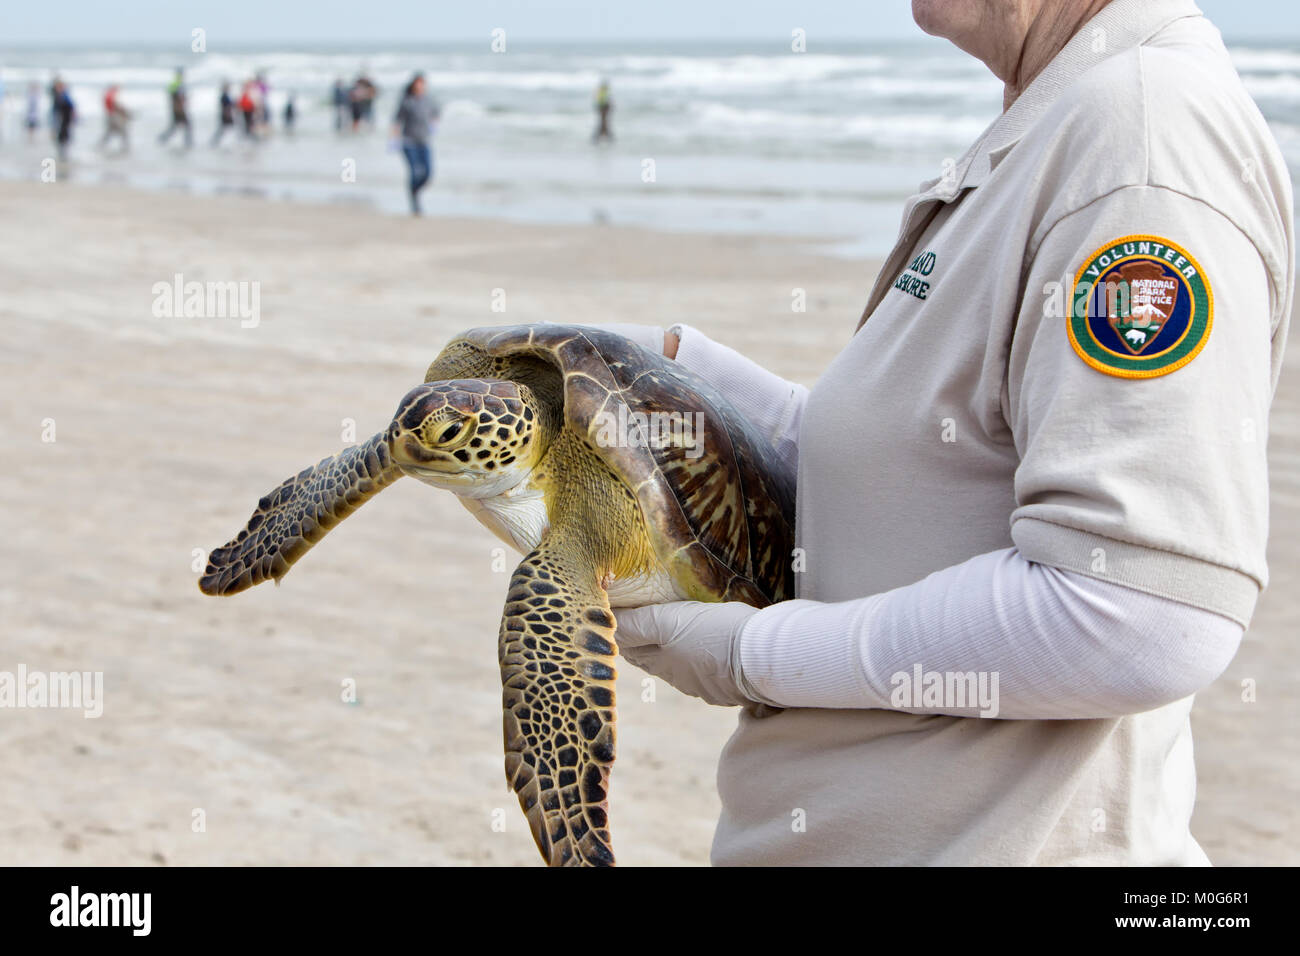 Adult female volunteer carrying & showing rehabilitated Kemp's Ridley Sea Turtle 'Lepidochelys kempii' - Stock Image